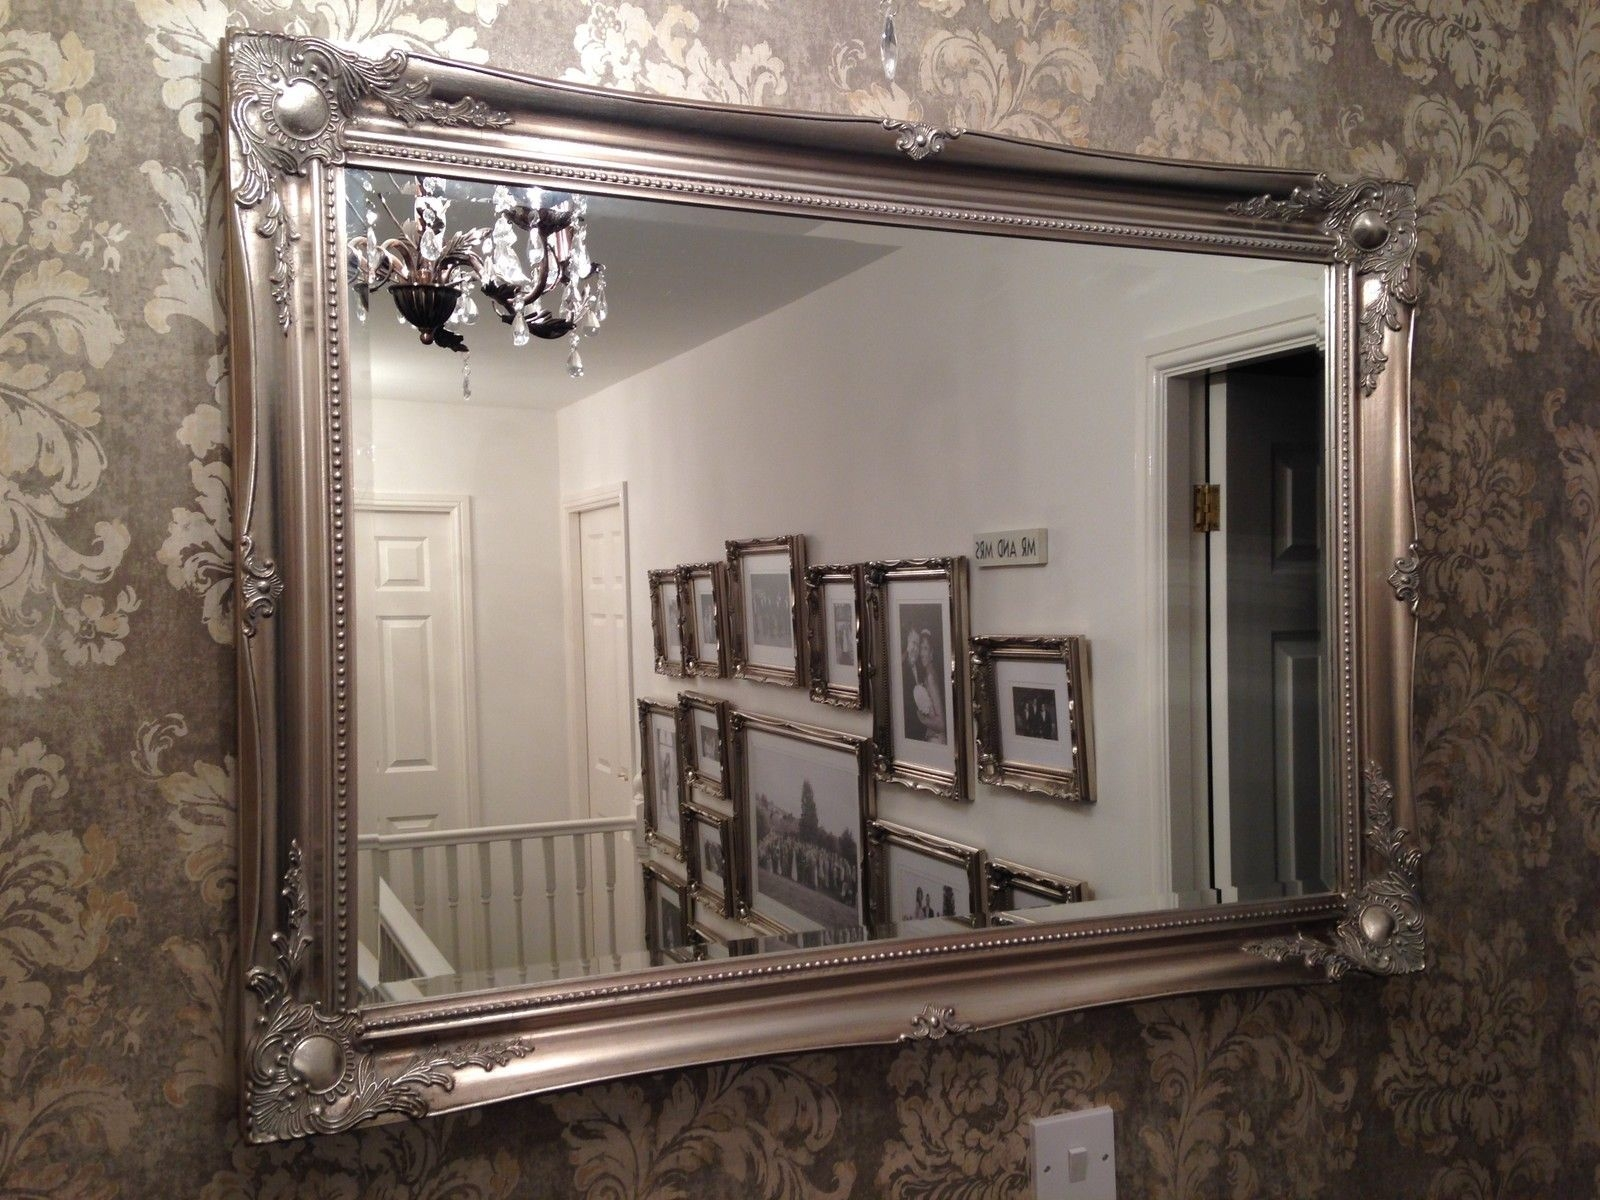 For Sale 20 Large Designer Wall Mirrors On Mirrors Decorative Intended For Antique Large Mirrors For Sale (Image 9 of 15)